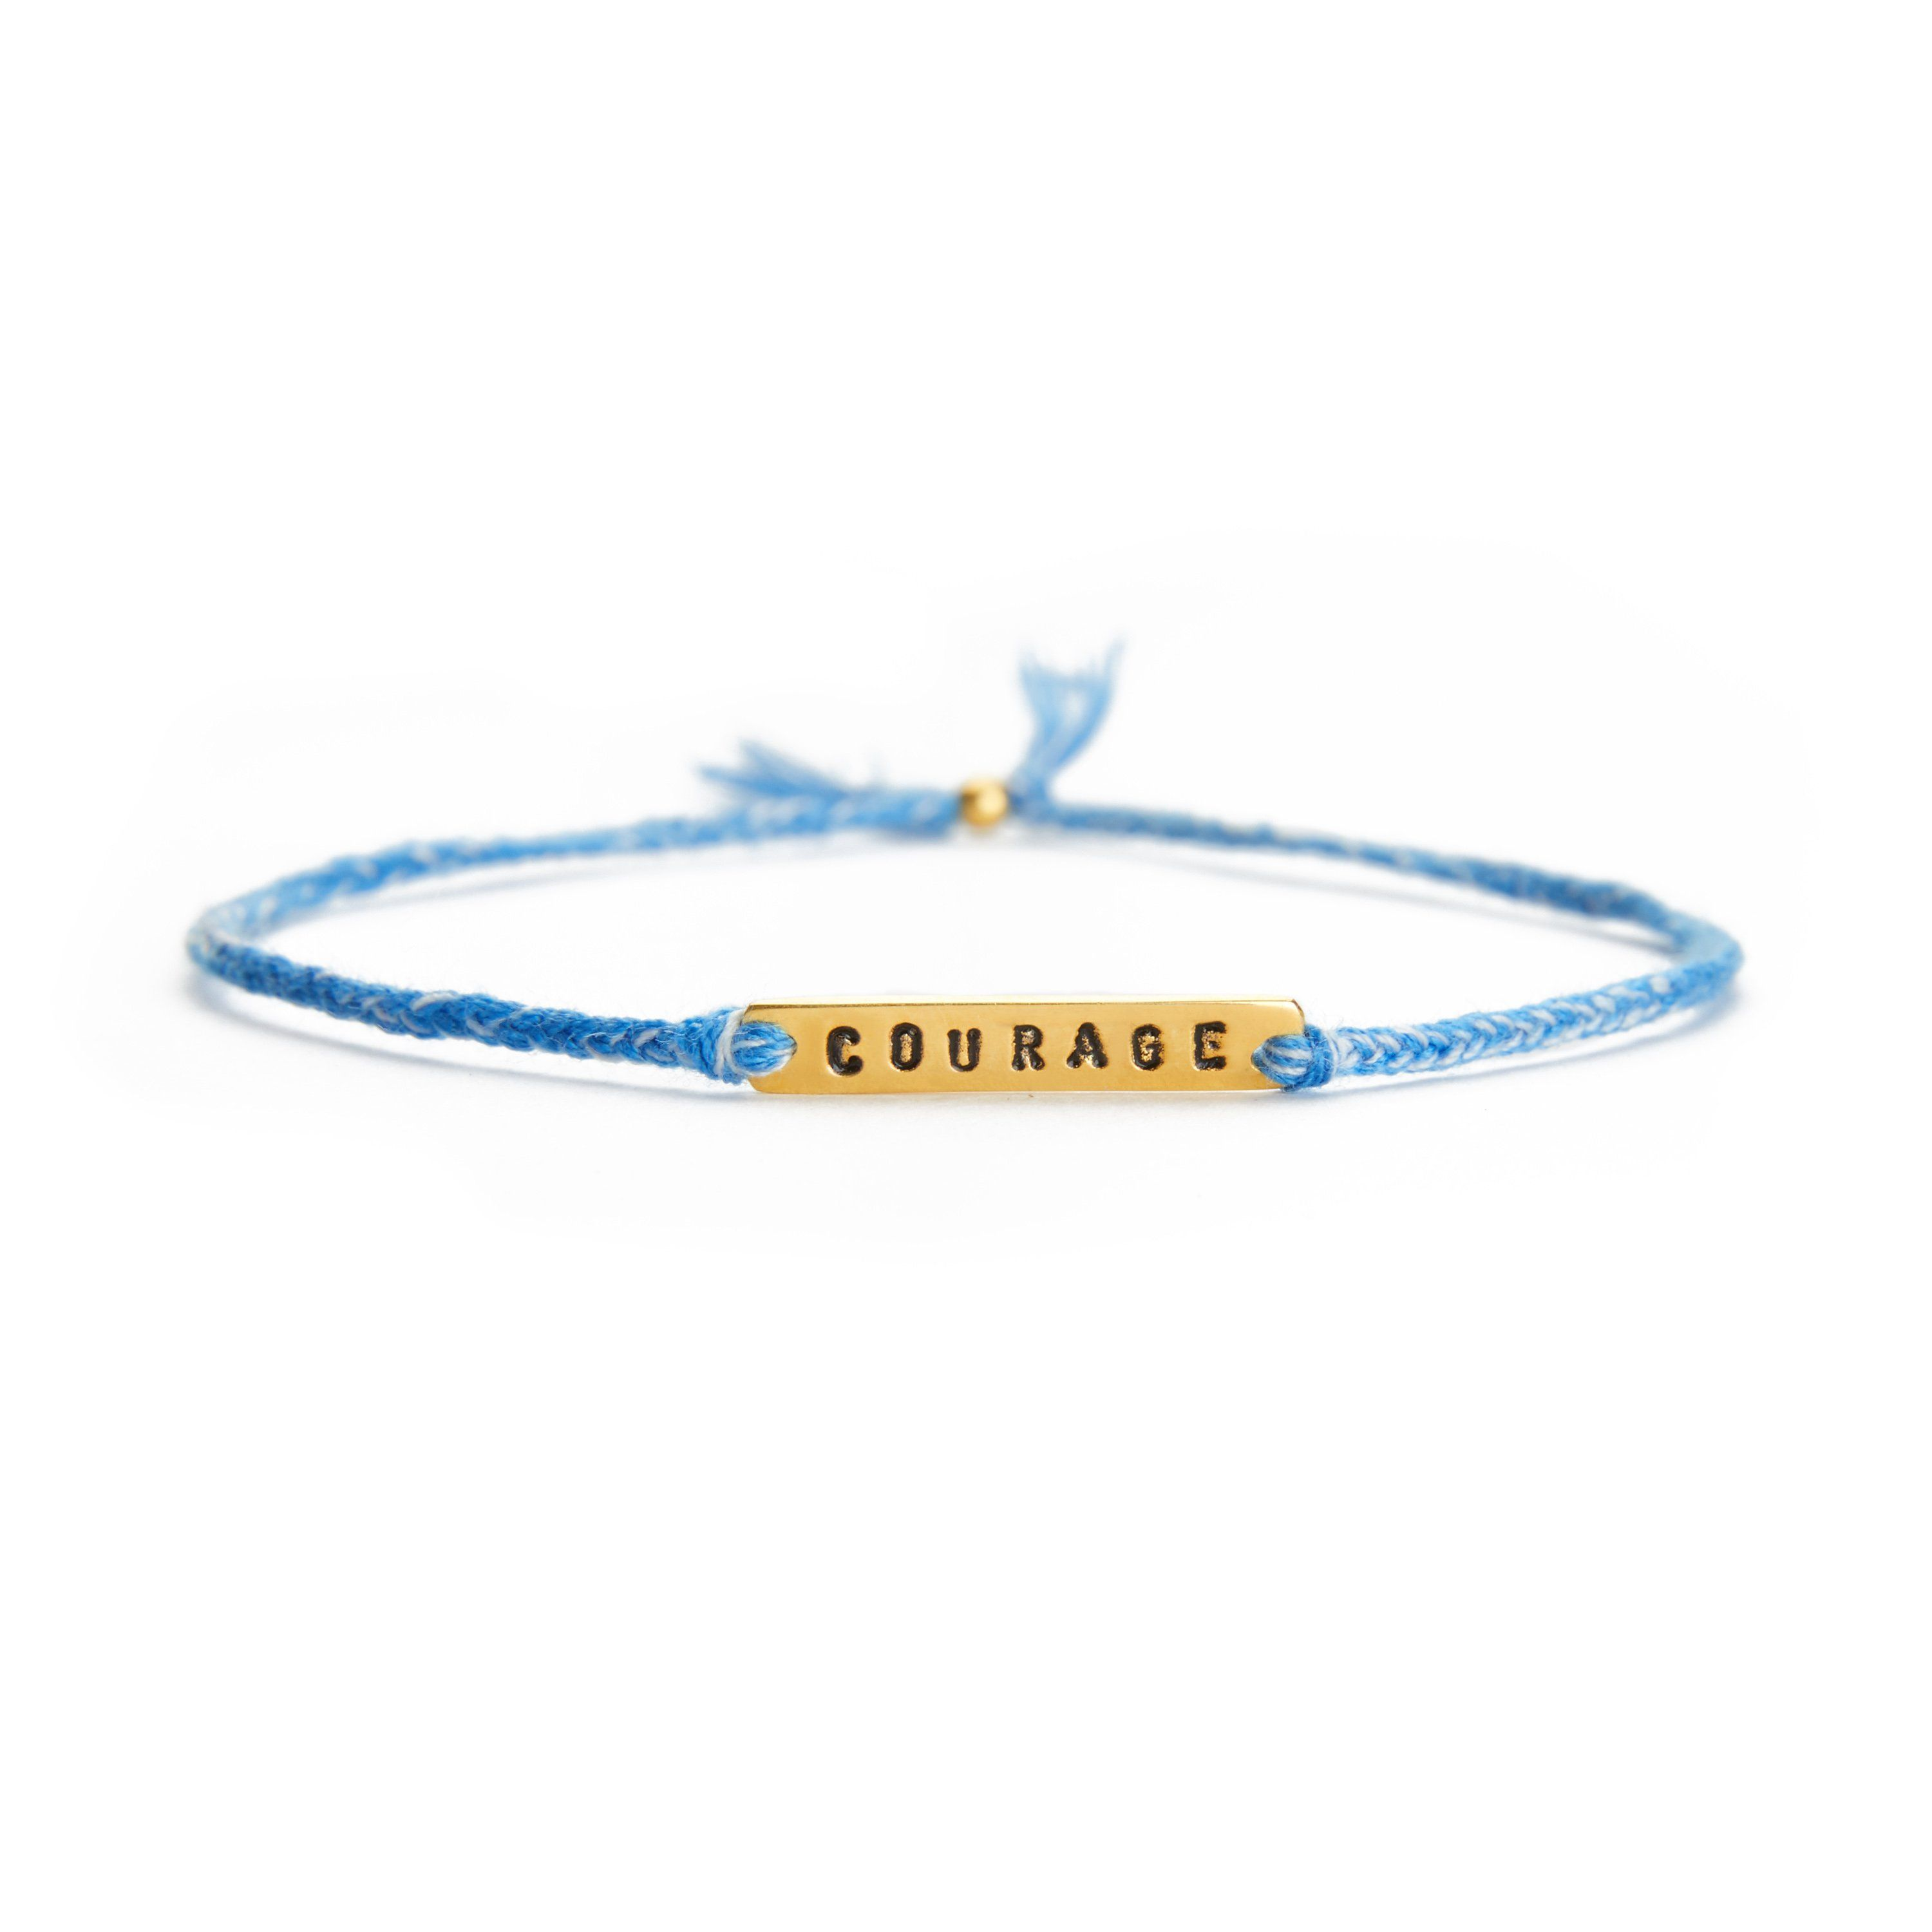 Courage blue mix gold handmade bracelet from Santai.no